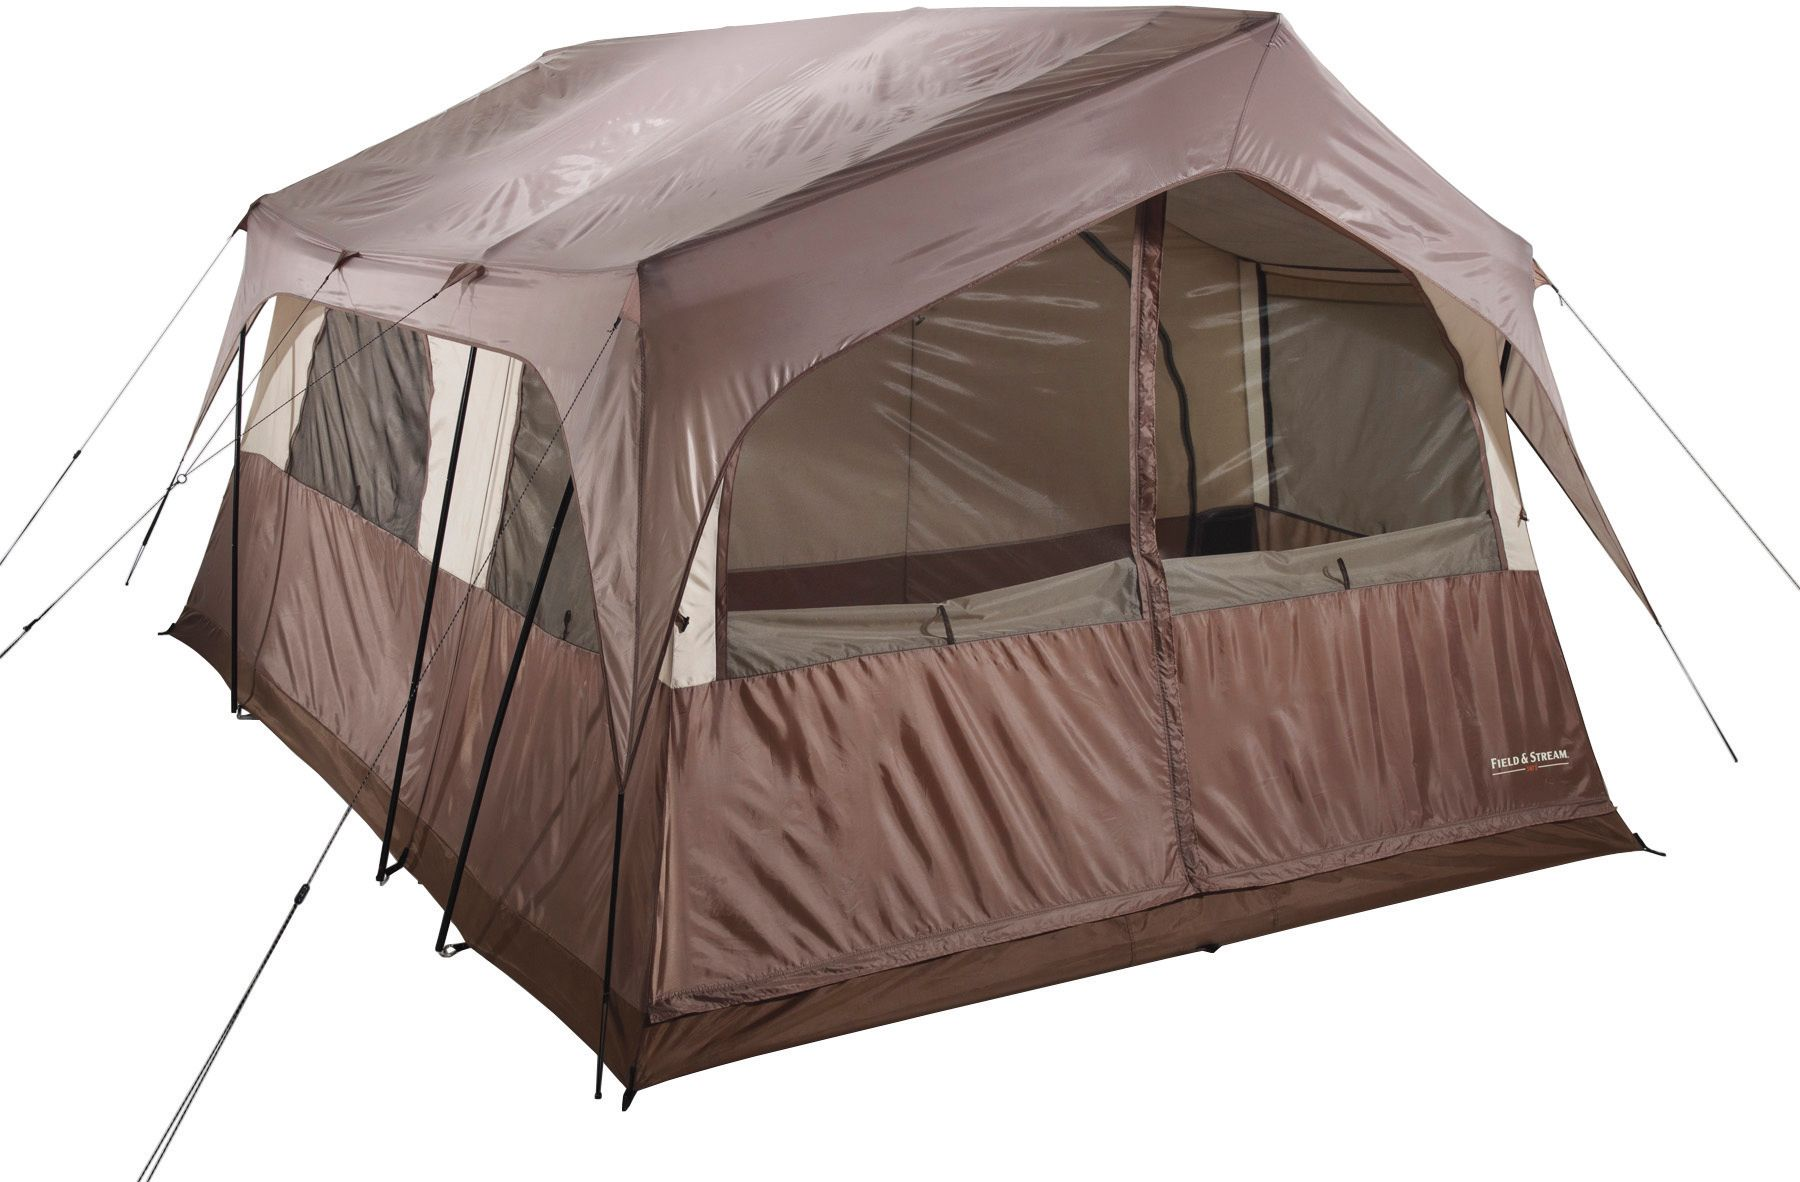 sc 1 st  DICKu0027S Sporting Goods & Field u0026 Stream Wilderness Cabin 10 Person Tent | DICKu0027S Sporting Goods